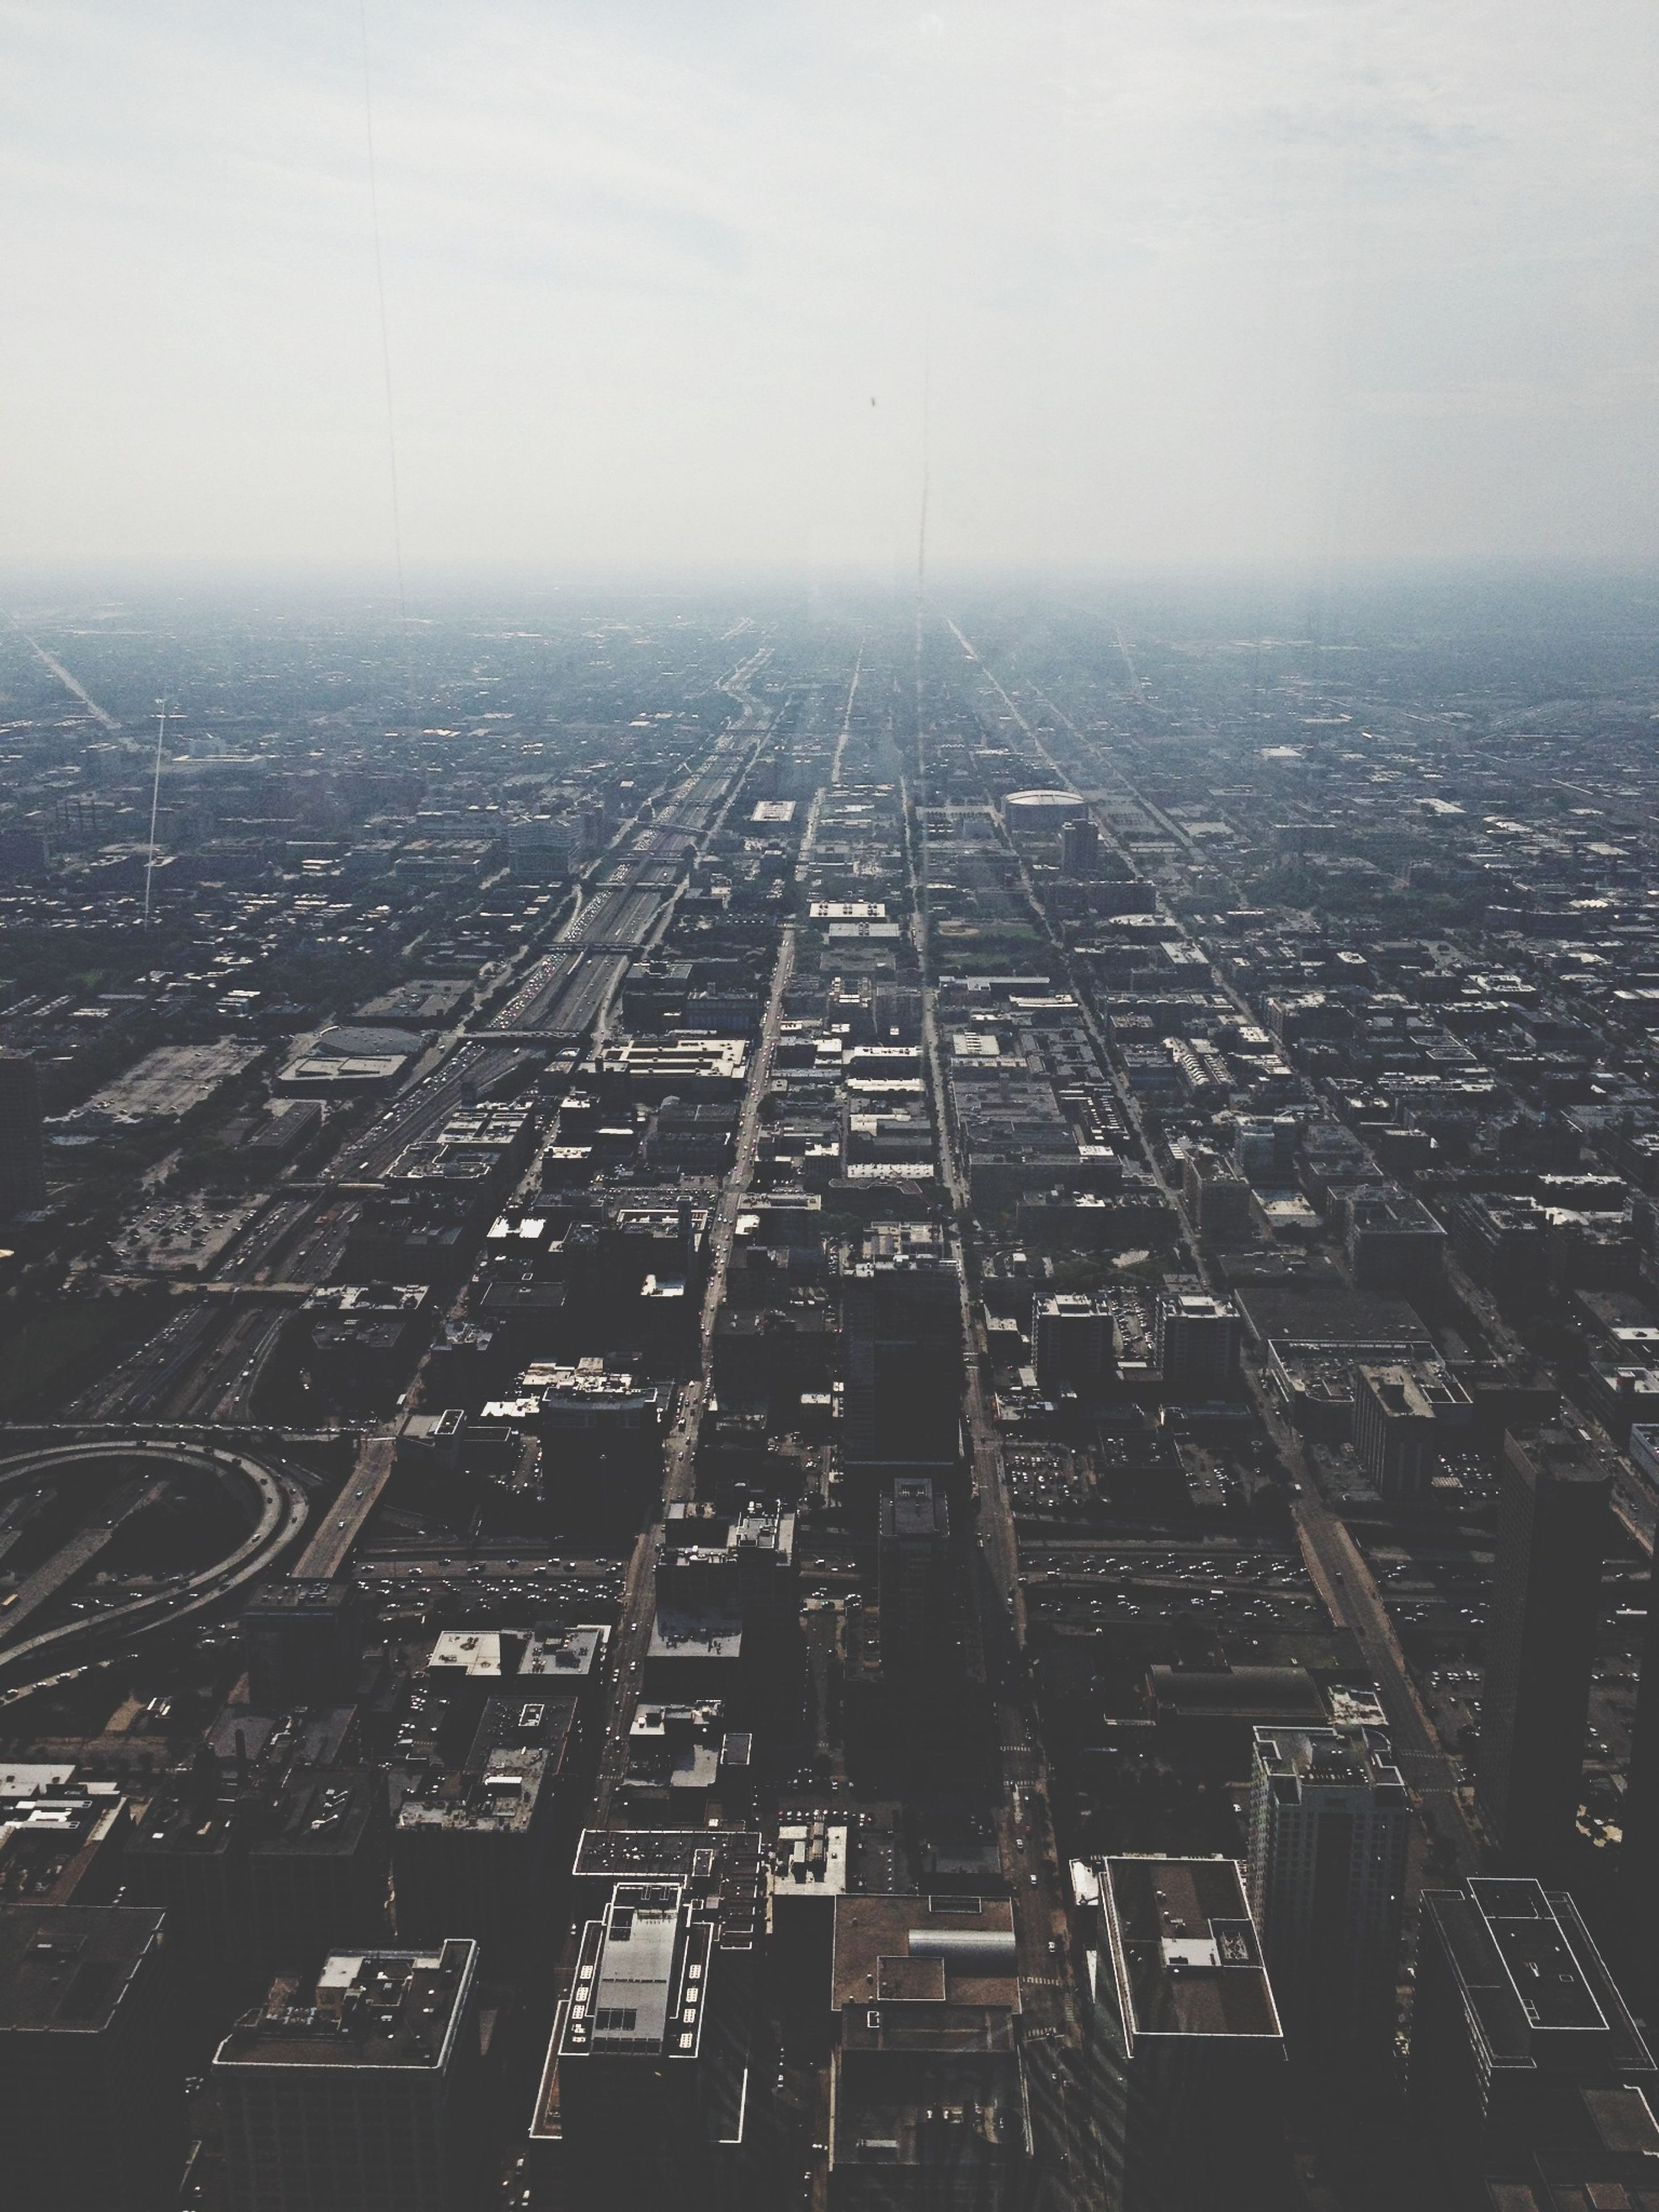 city, architecture, building exterior, cityscape, high angle view, built structure, crowded, aerial view, sky, city life, skyscraper, modern, tall - high, travel, day, travel destinations, outdoors, residential district, capital cities, transportation